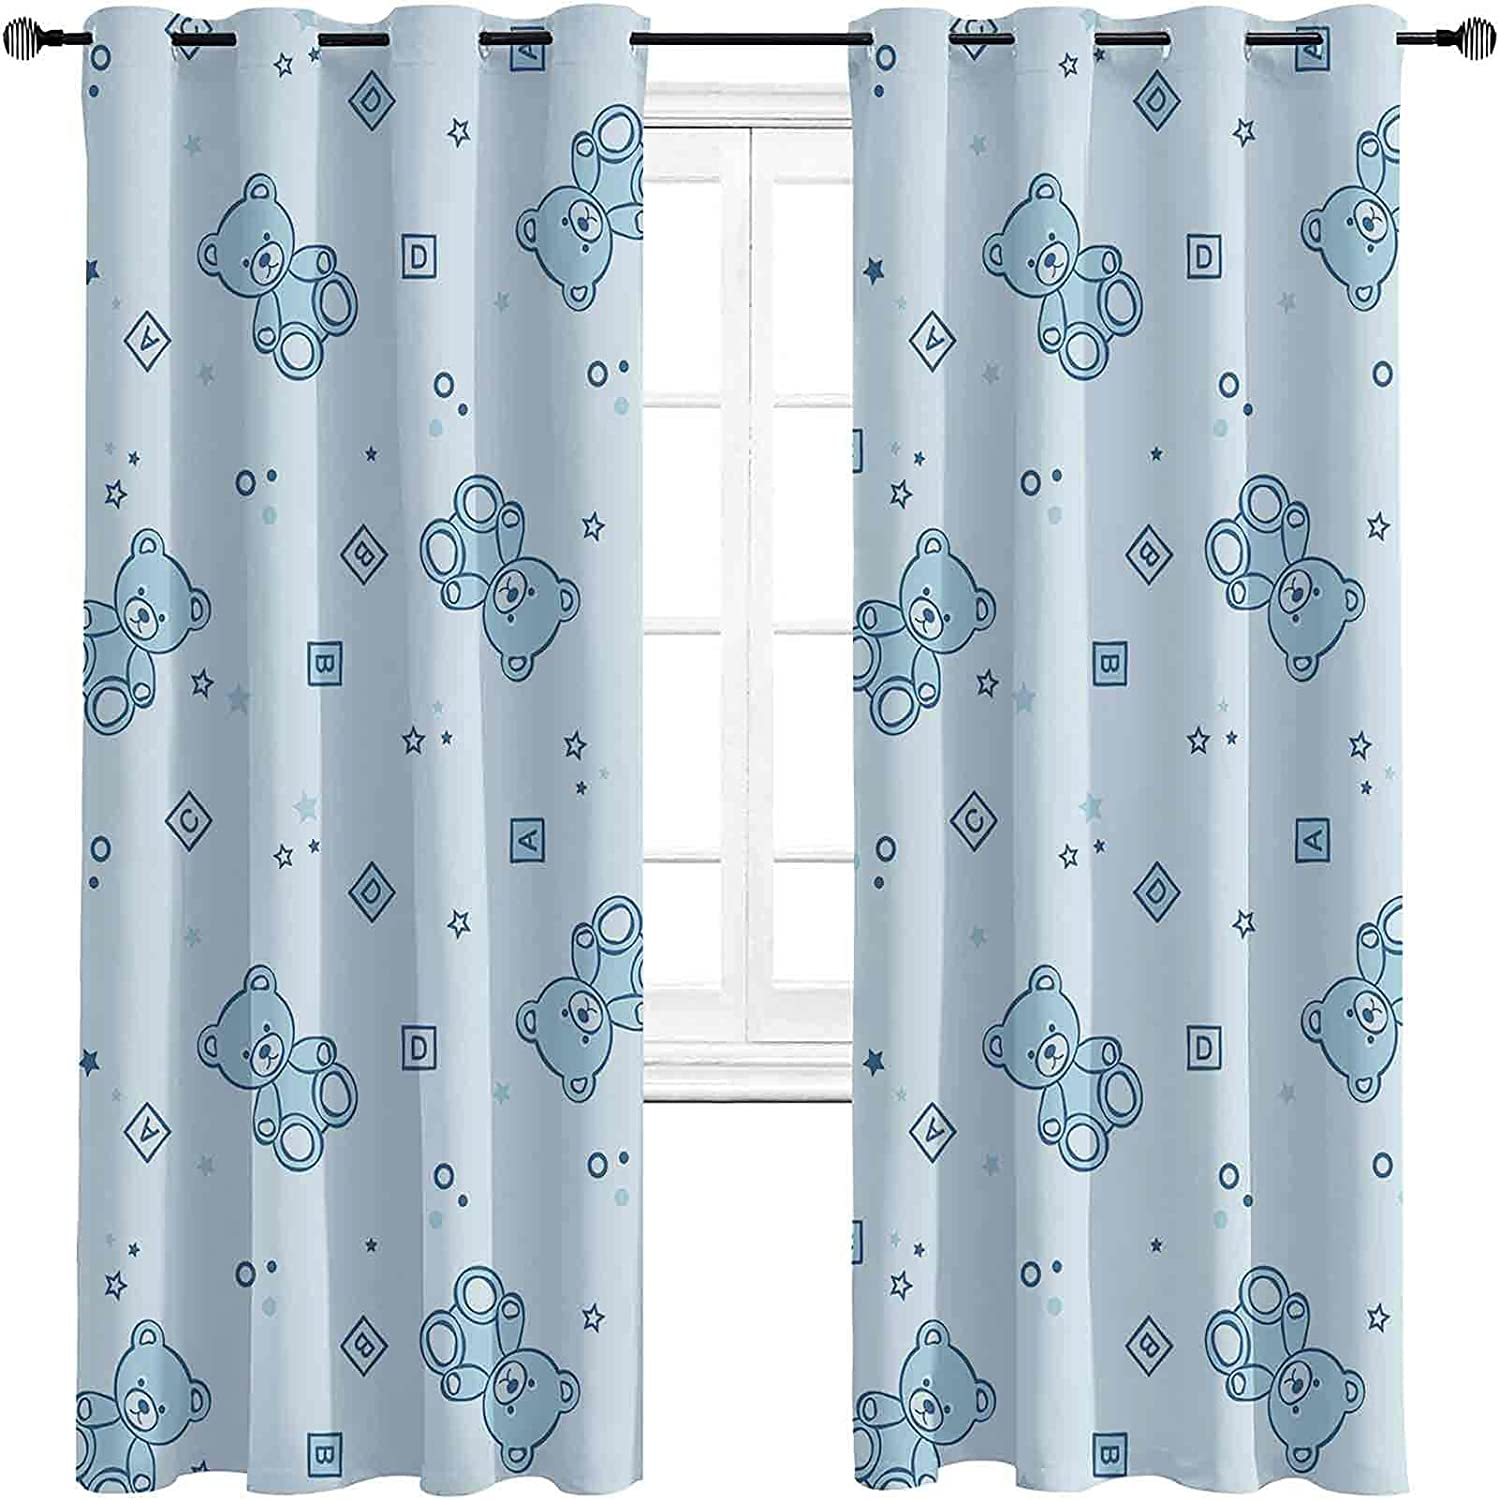 Nursery High-Strength Blackout Curtains Challenge the lowest price of Trust Japan ☆ Teddy Toys Bears and wi